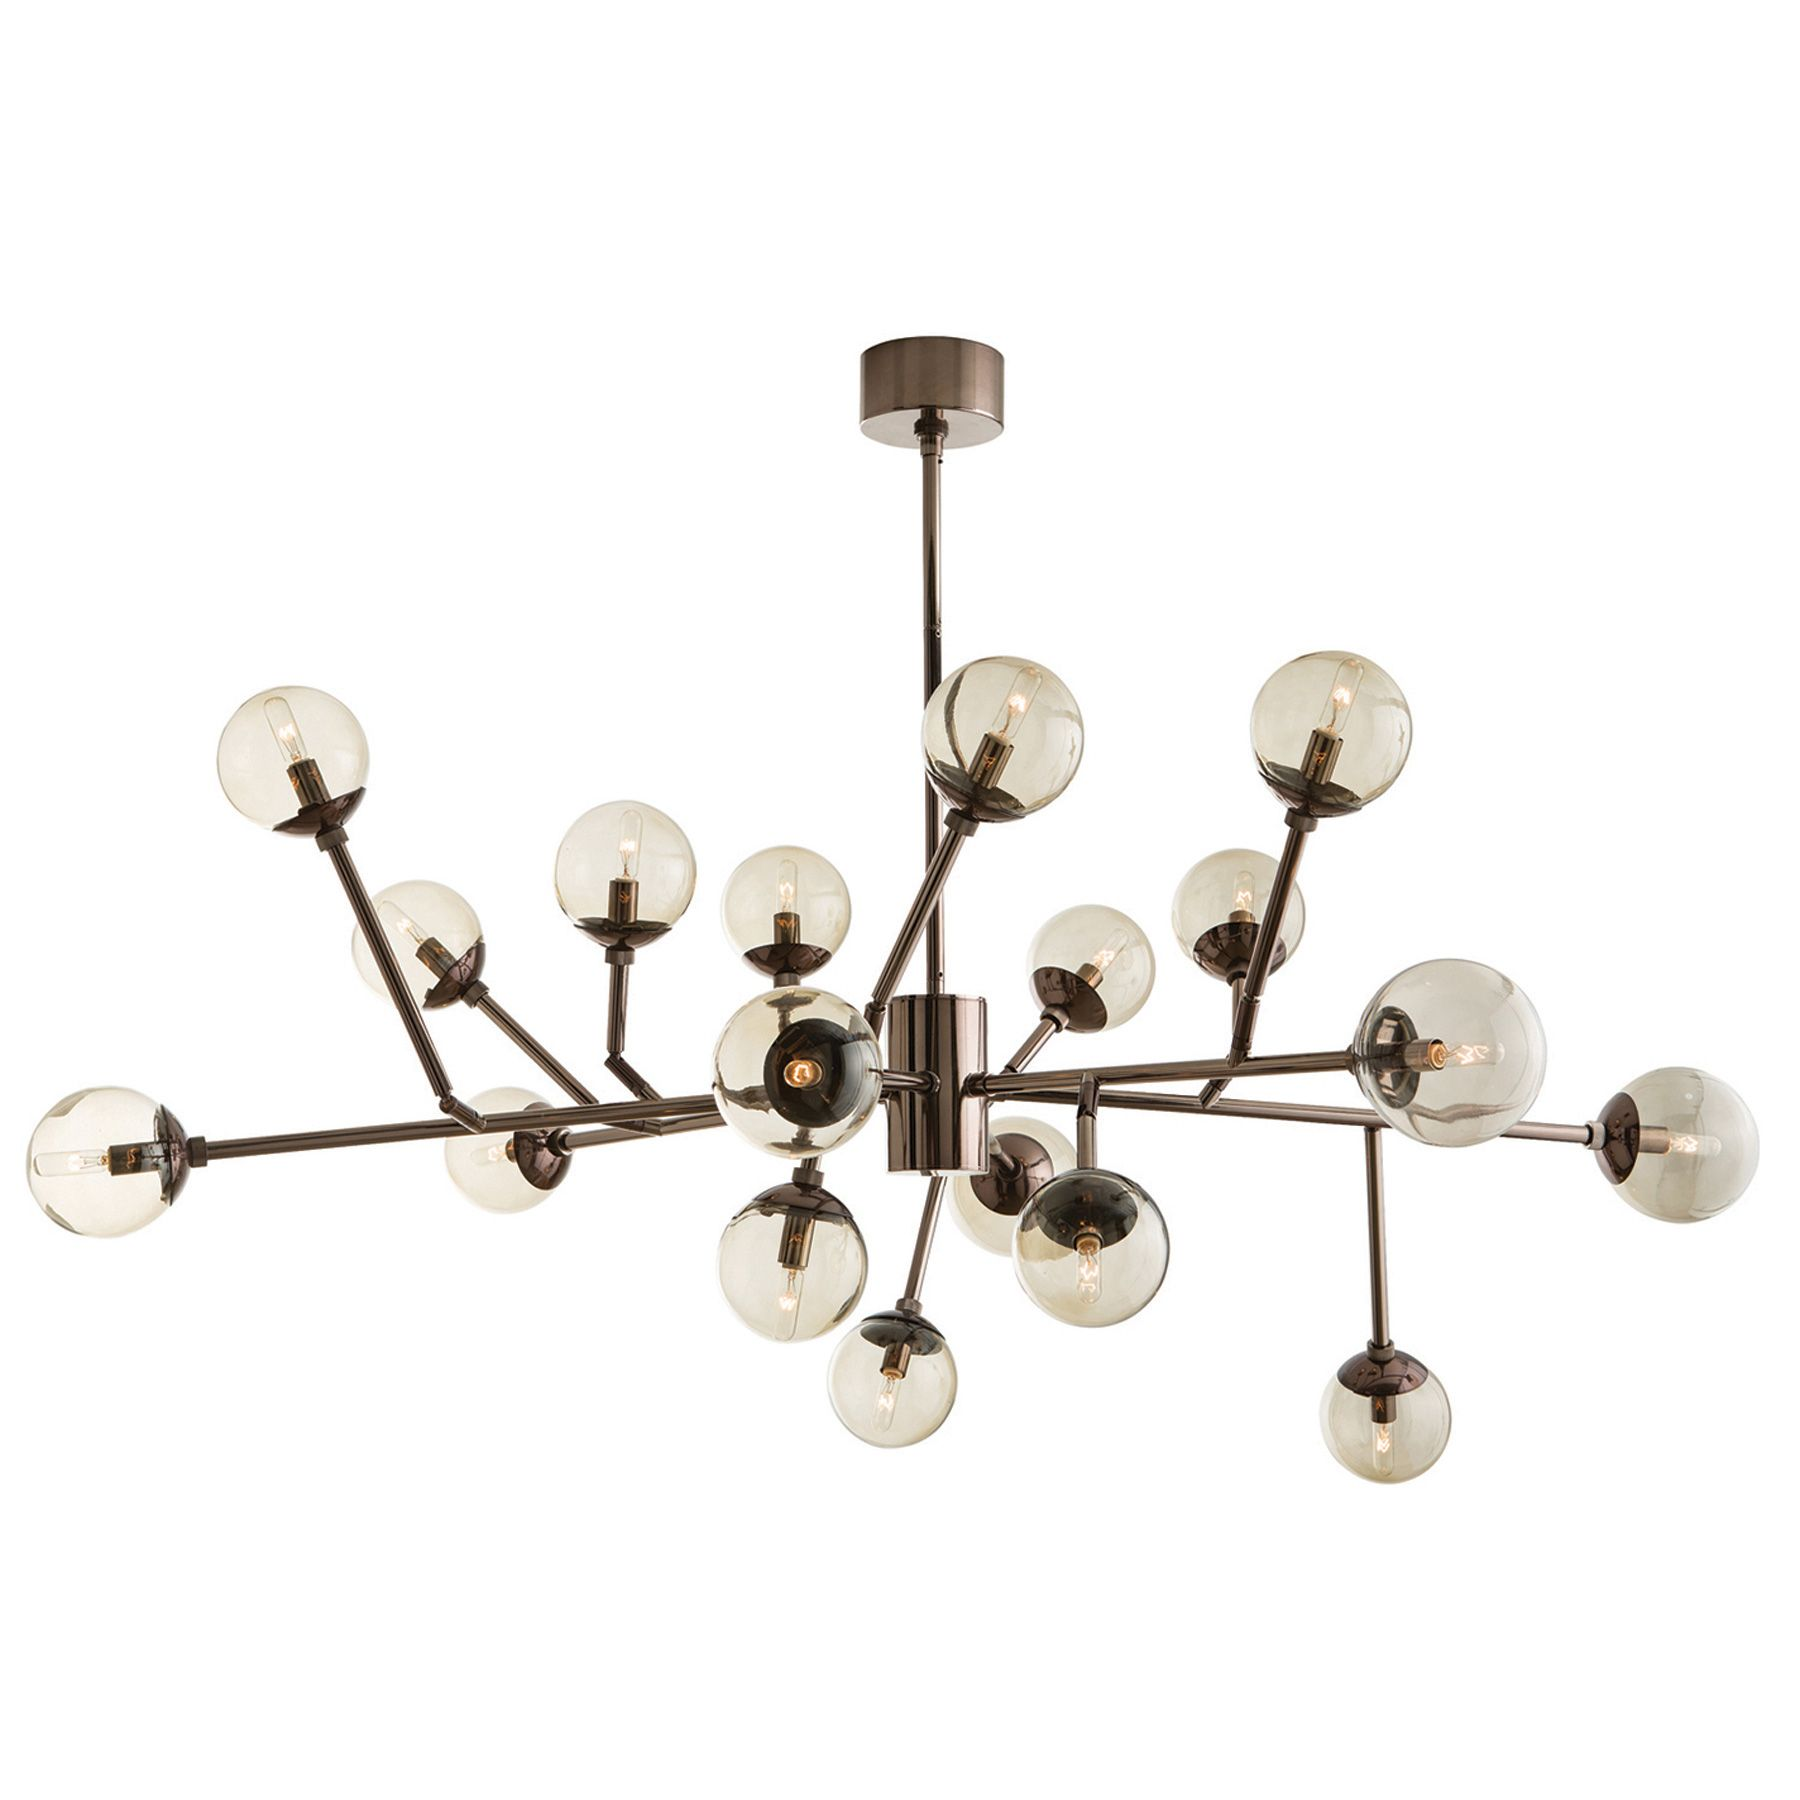 Dallas Chandelier Arteriors Home at Lightology